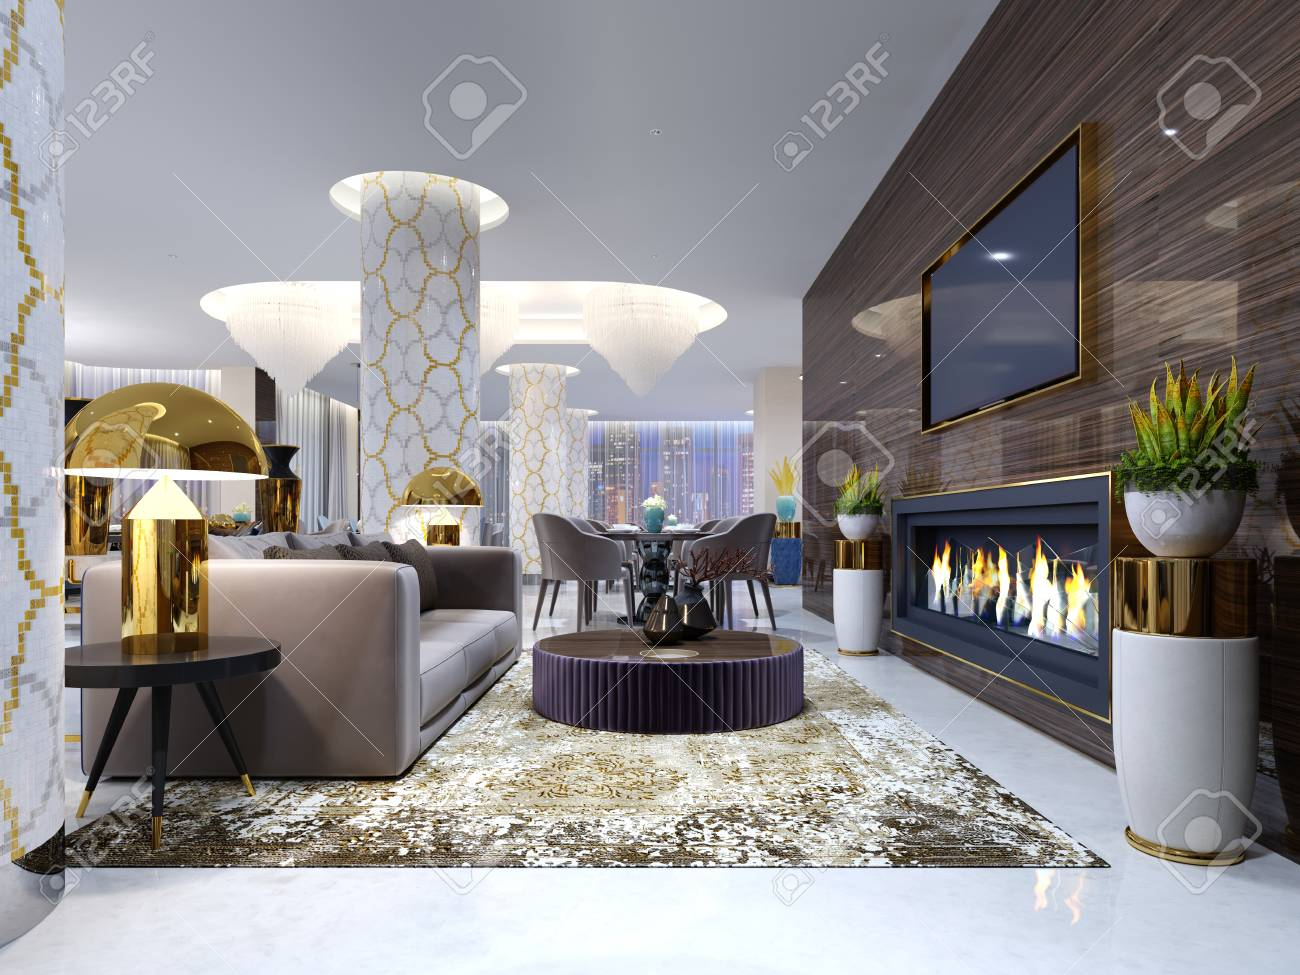 fireplace lounge area in a luxury hotel with a soft sofa armchairs